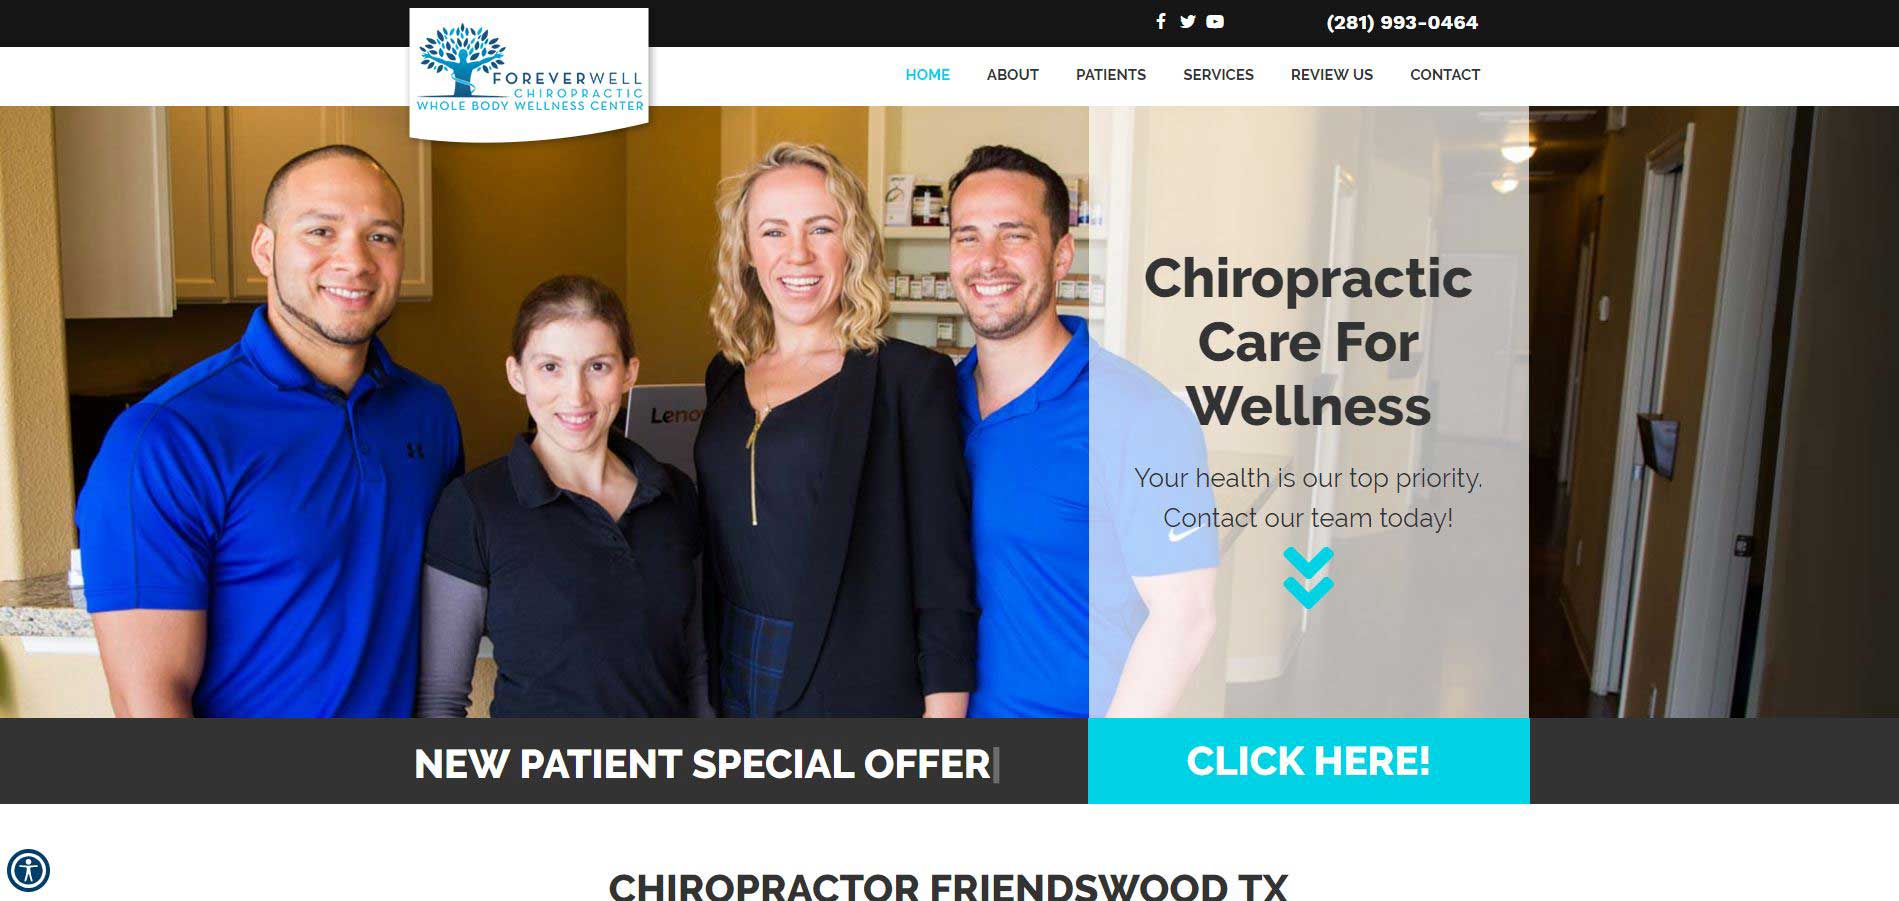 Chiropractor Friendswood TX Forever Well Chiropractic Whole Body Wellness Center